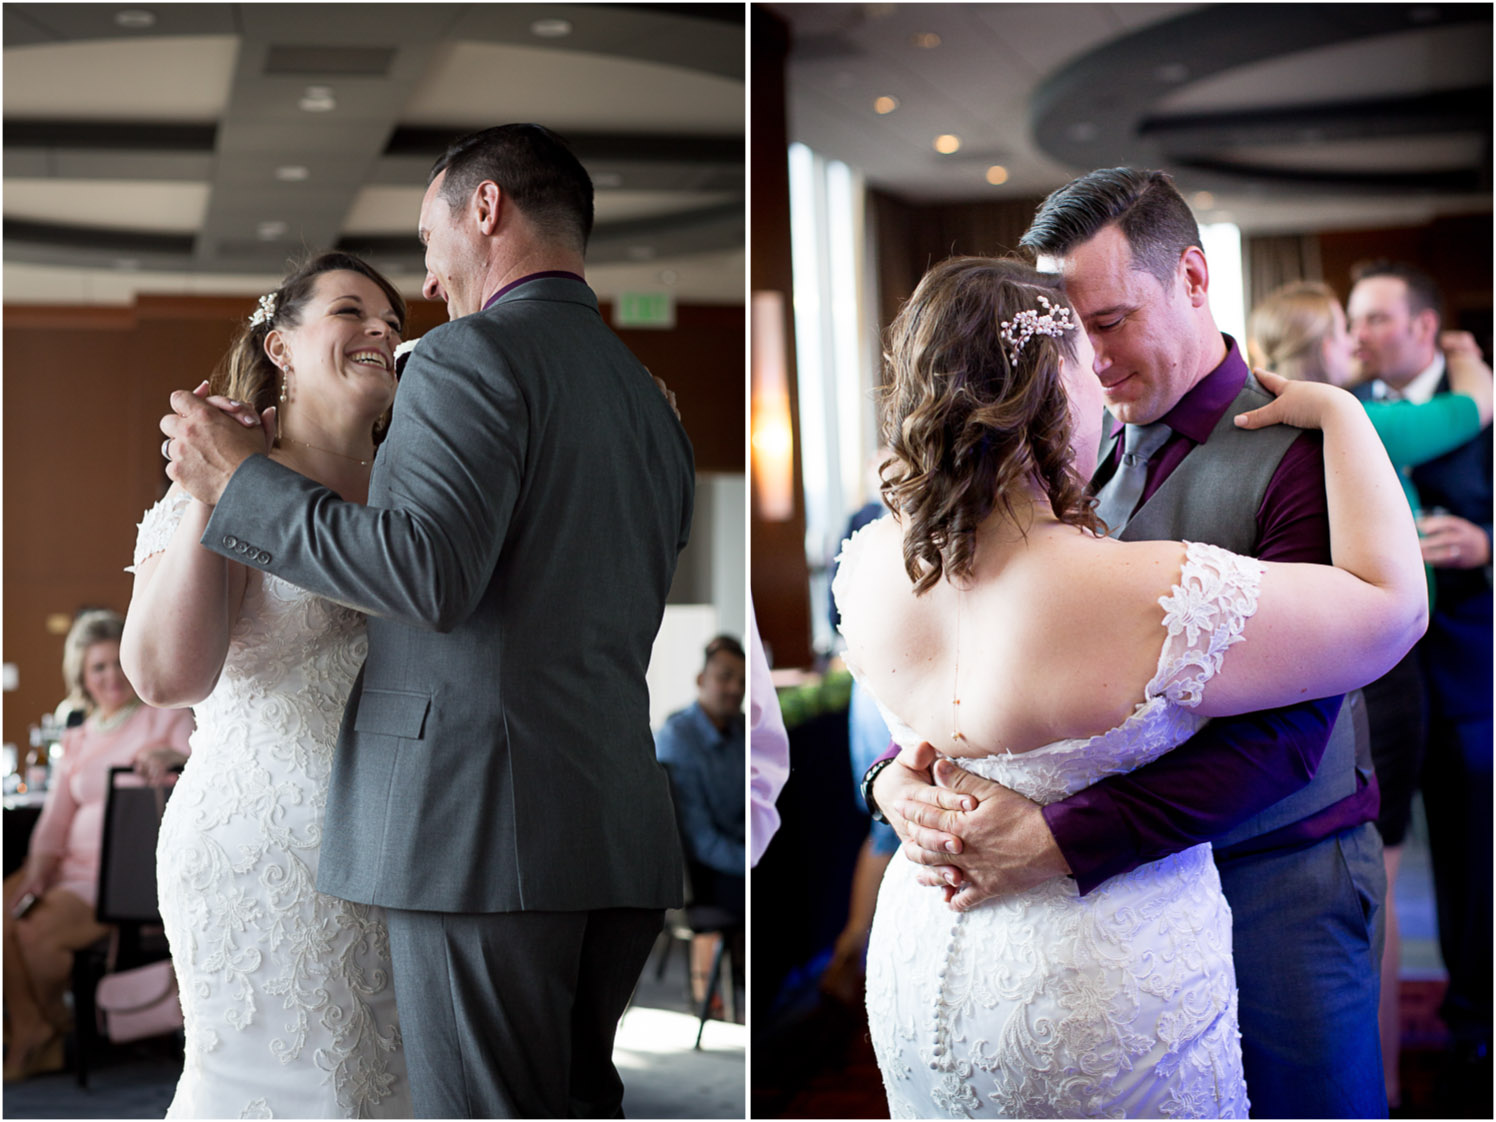 15-windows-on-mn-downtown-minneapolis-mn-weddings-ids-tower-reception-bride-groom-first-dance-mahonenphotography.jpg